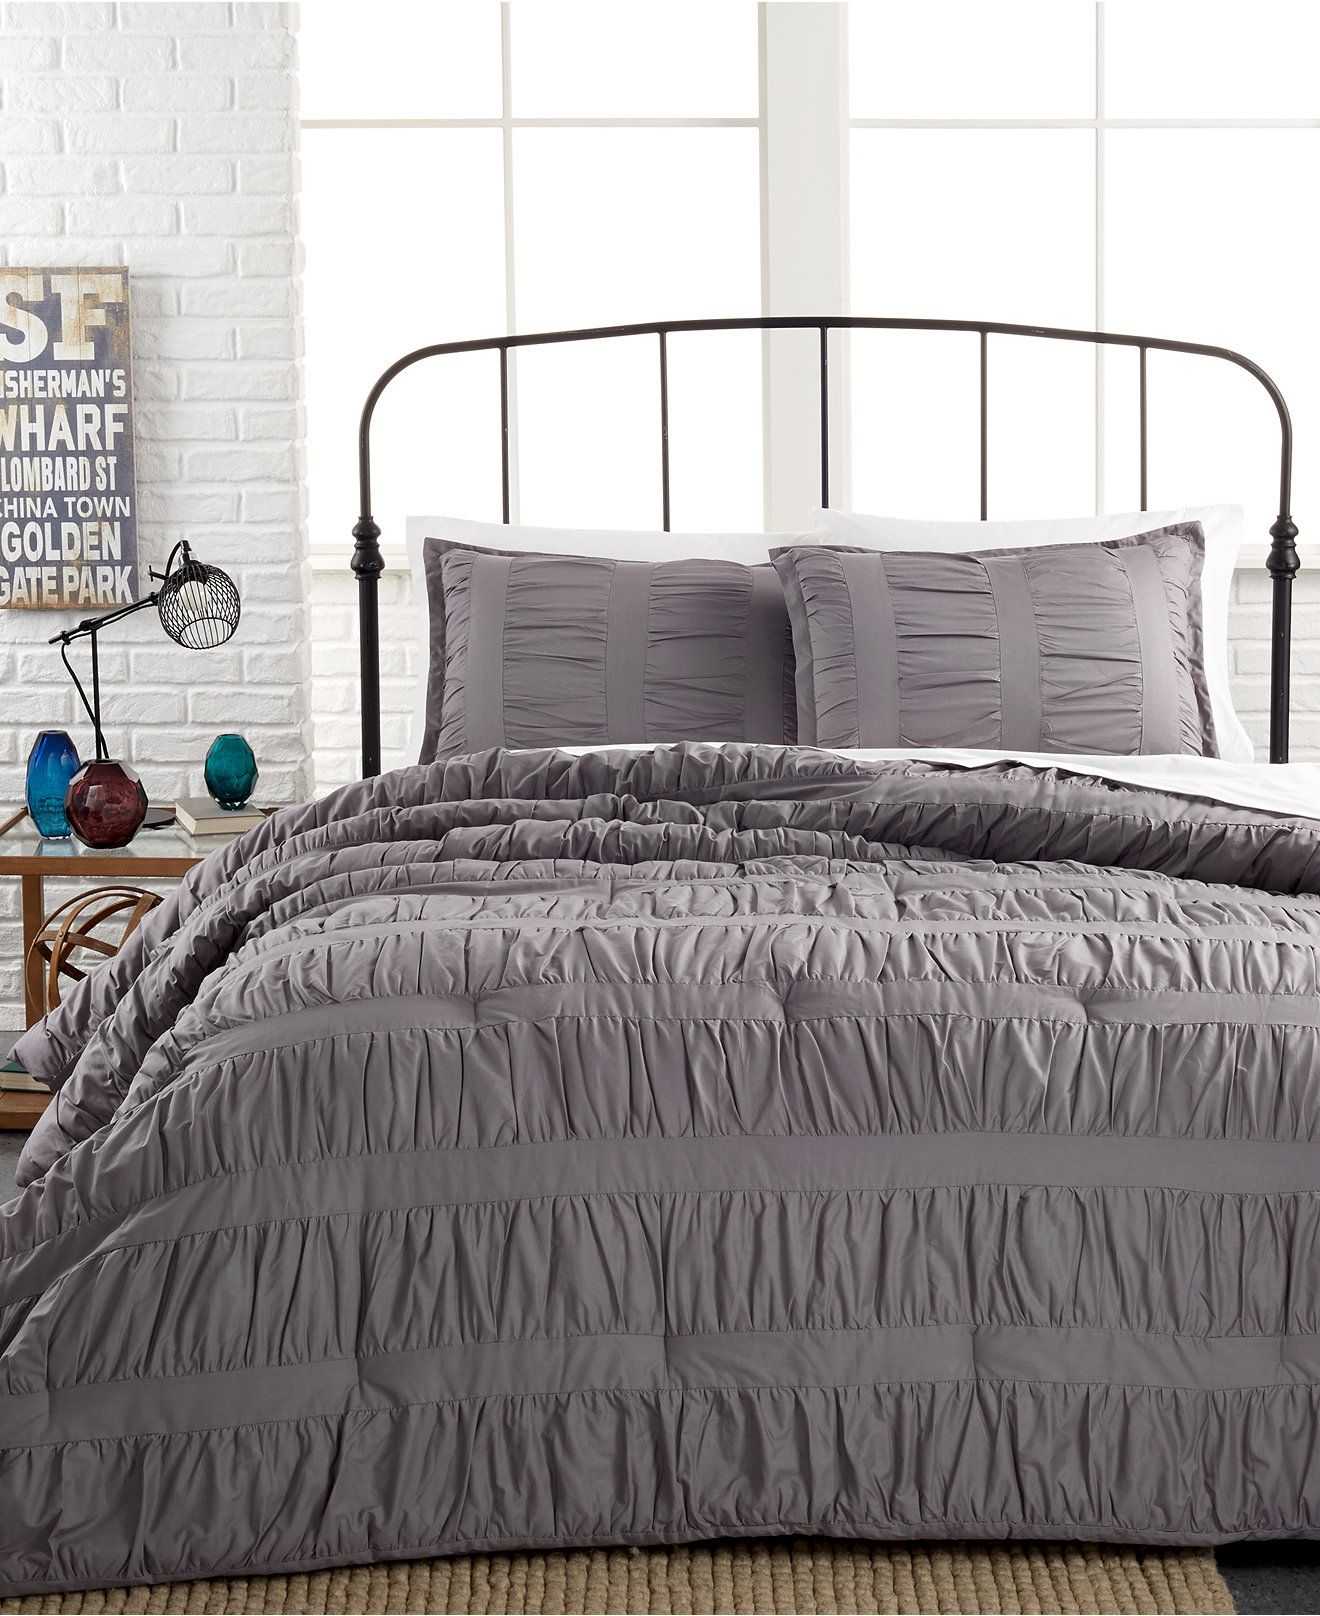 twin comforter bedroom bedding plain white dark king set cheap bedspread navy queen size charcoal grey and gold sets gray of bed full sheets